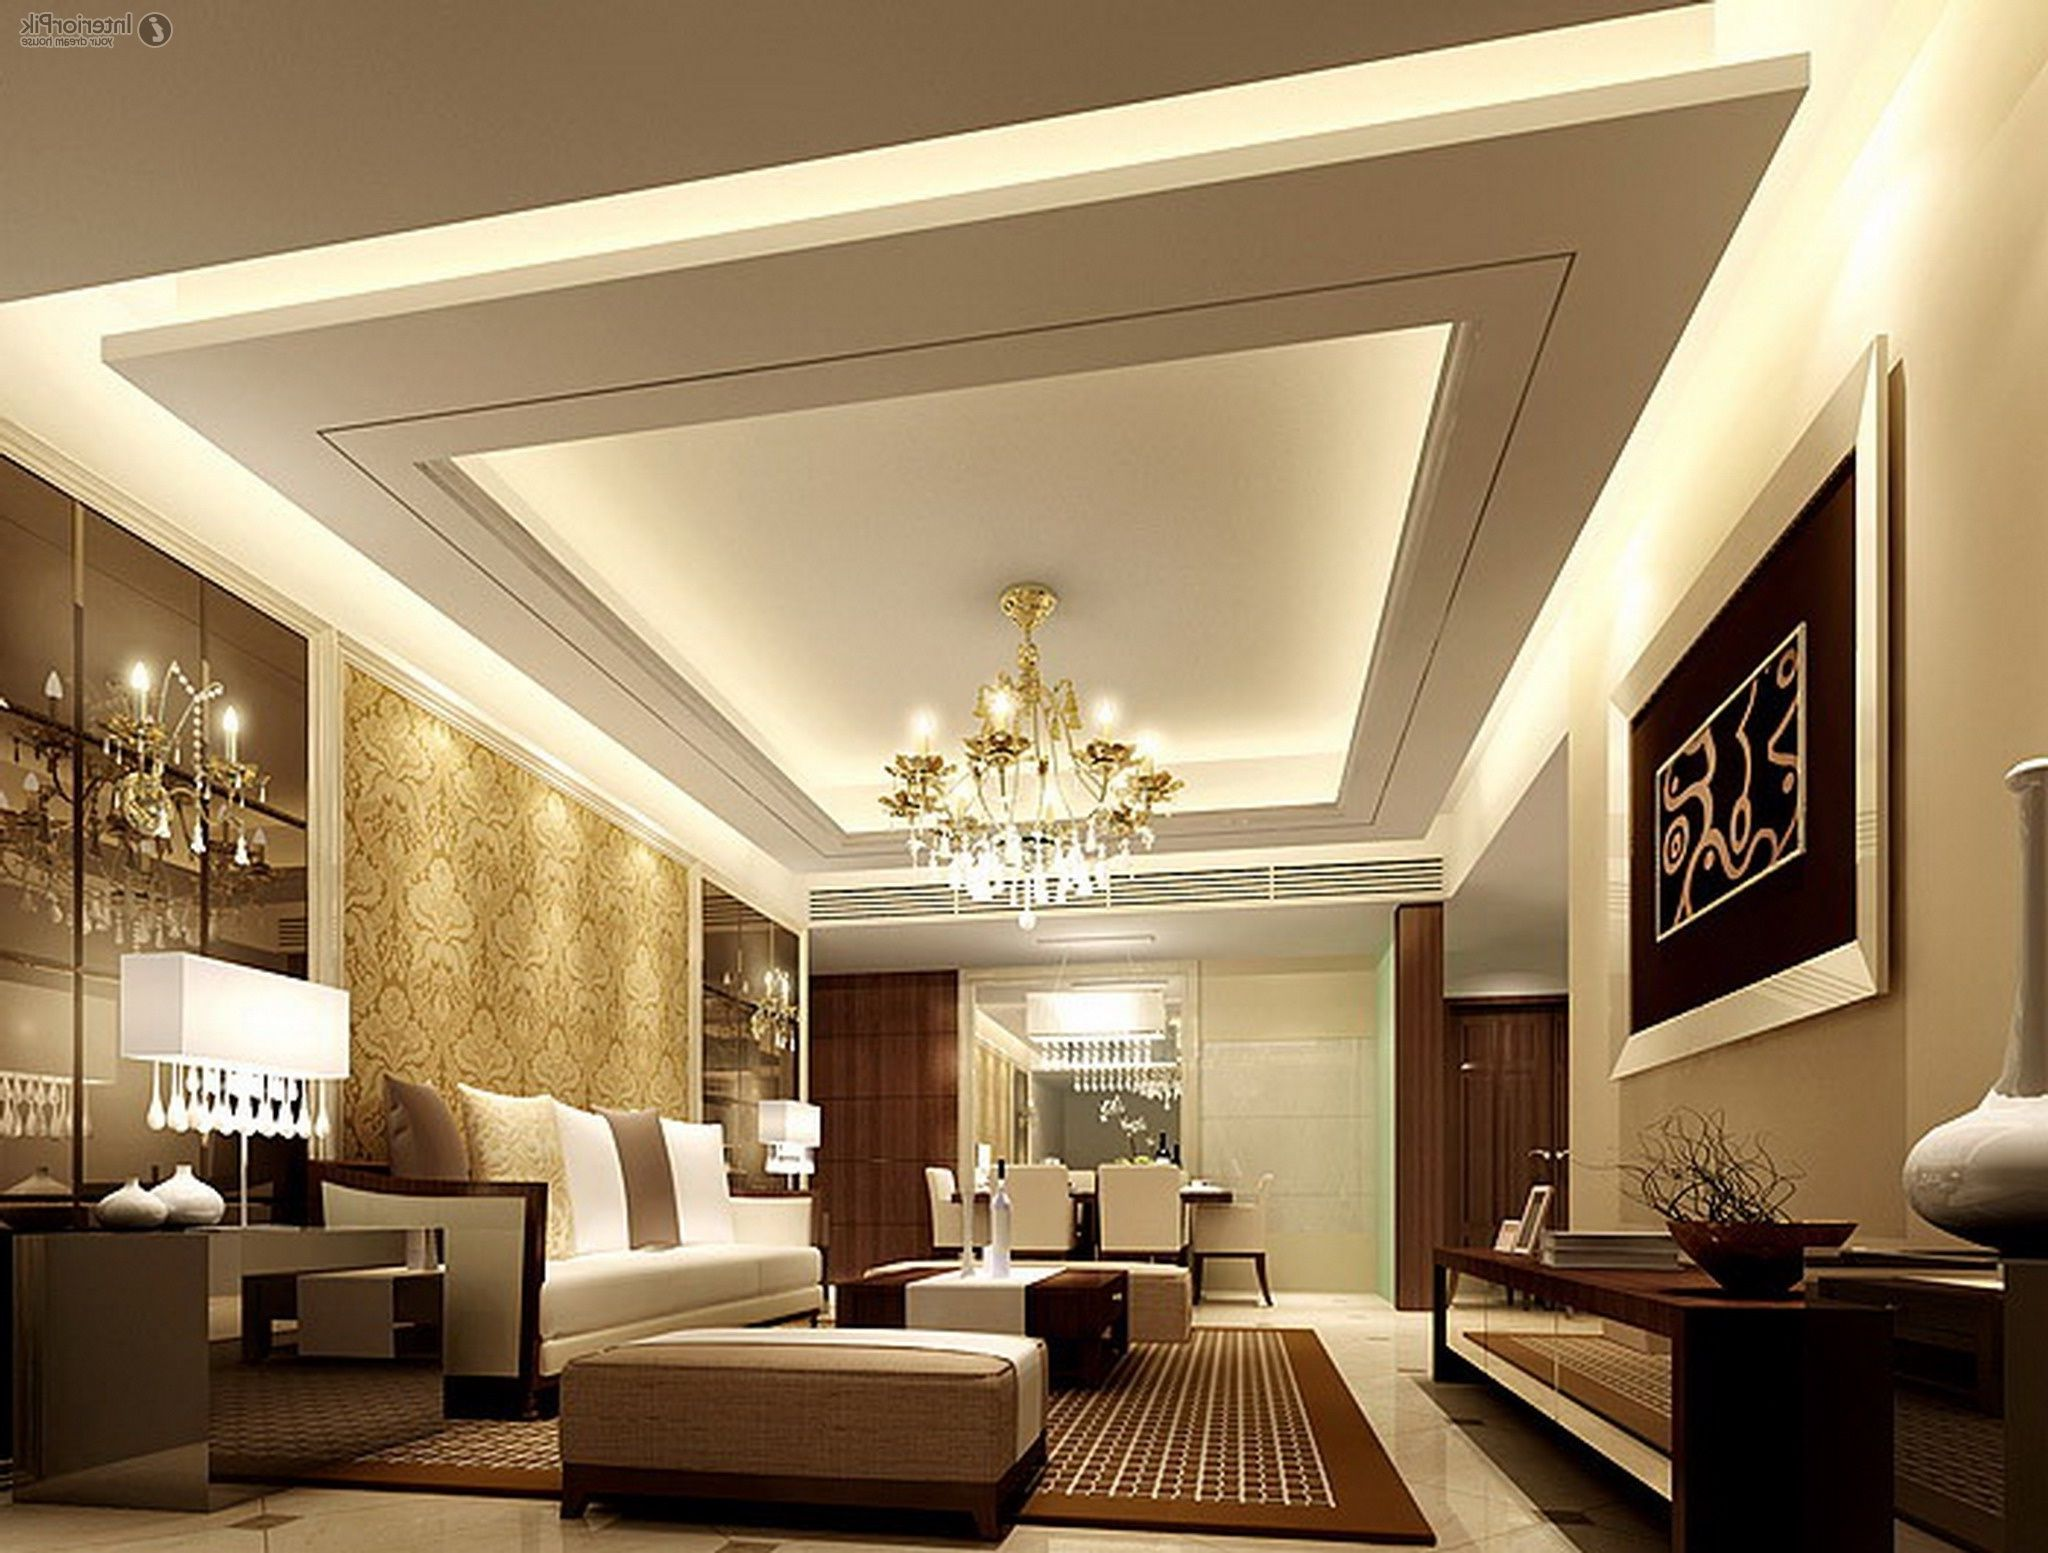 Ceiling Ideas For Living Room white yellow round pop ceiling design and traditional sofa set in living room Ceiling Designs For Your Living Room